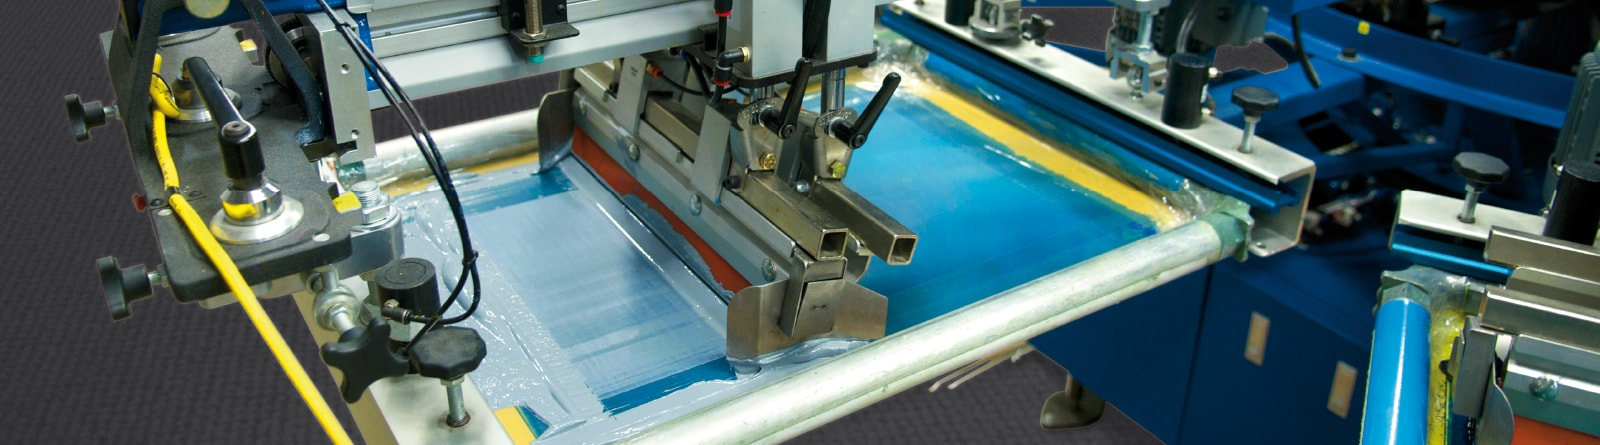 Printing-and-Printing-Equipment-banner